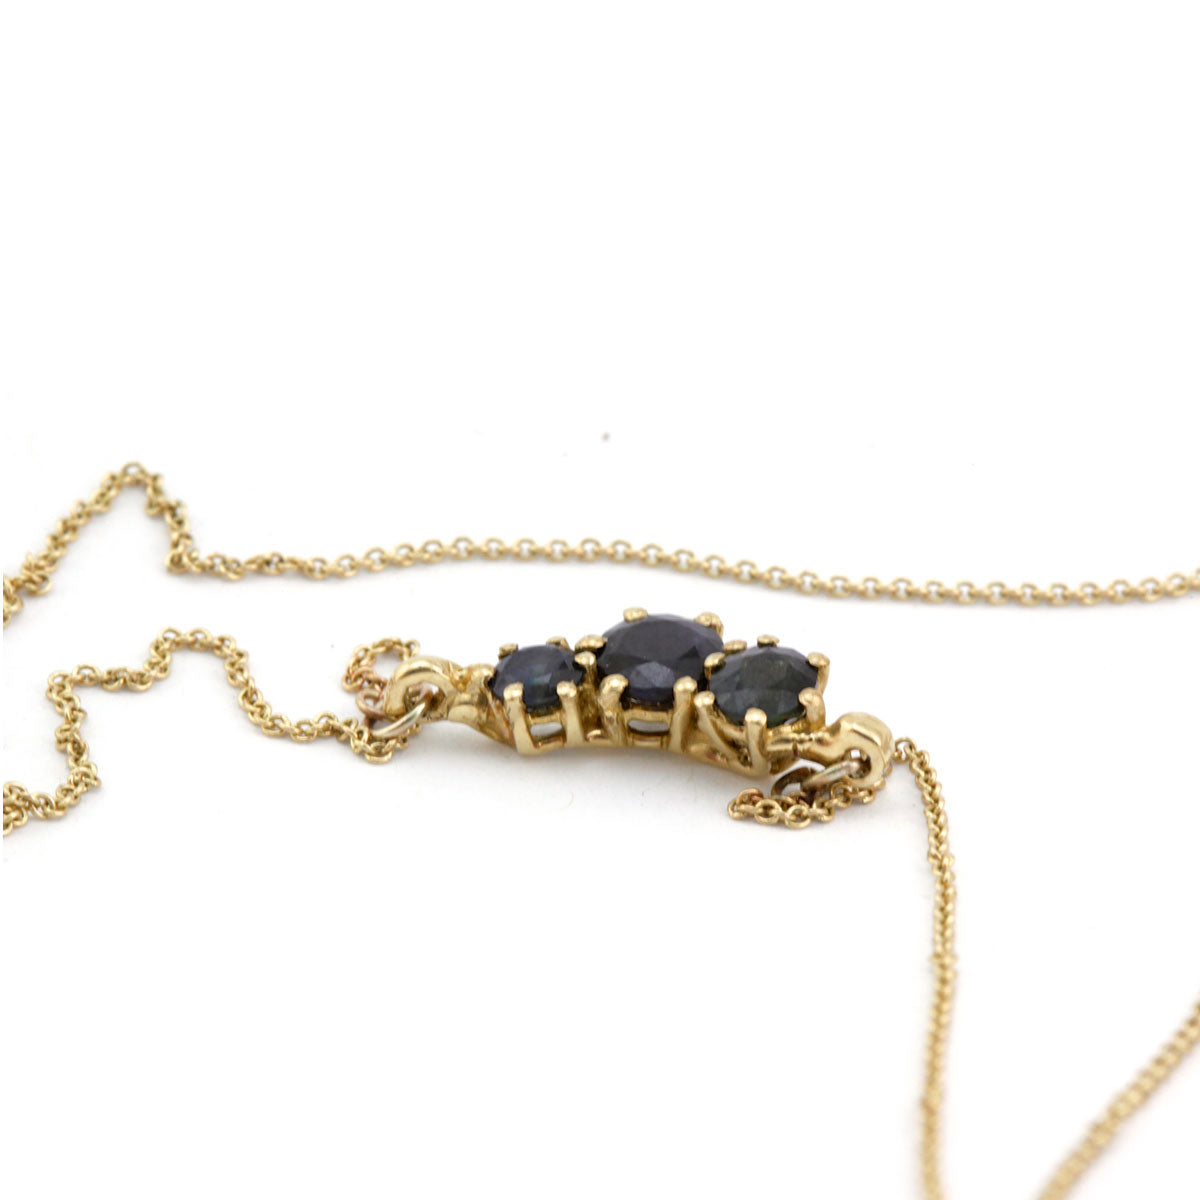 Sapphire necklace in yellow gold